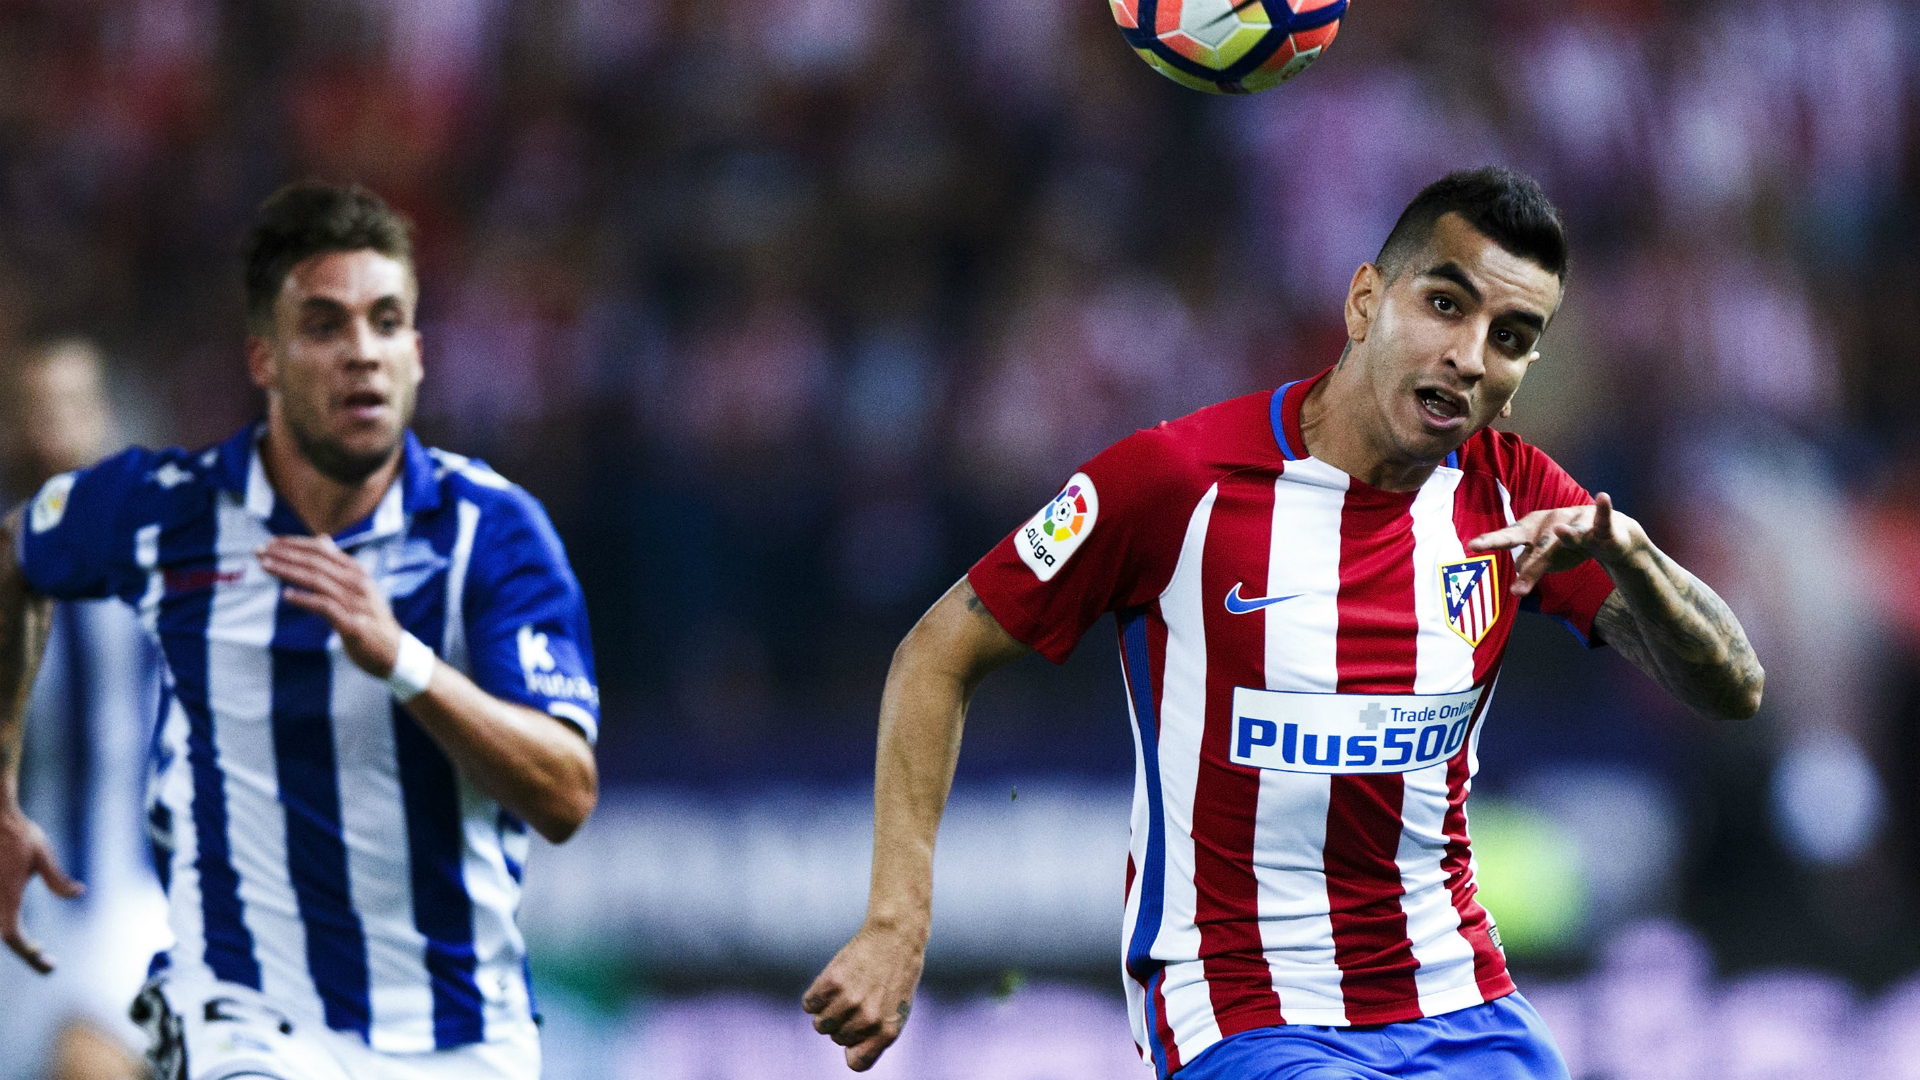 FIFA 17's most promising youngsters | Angel Correa - Goal.com